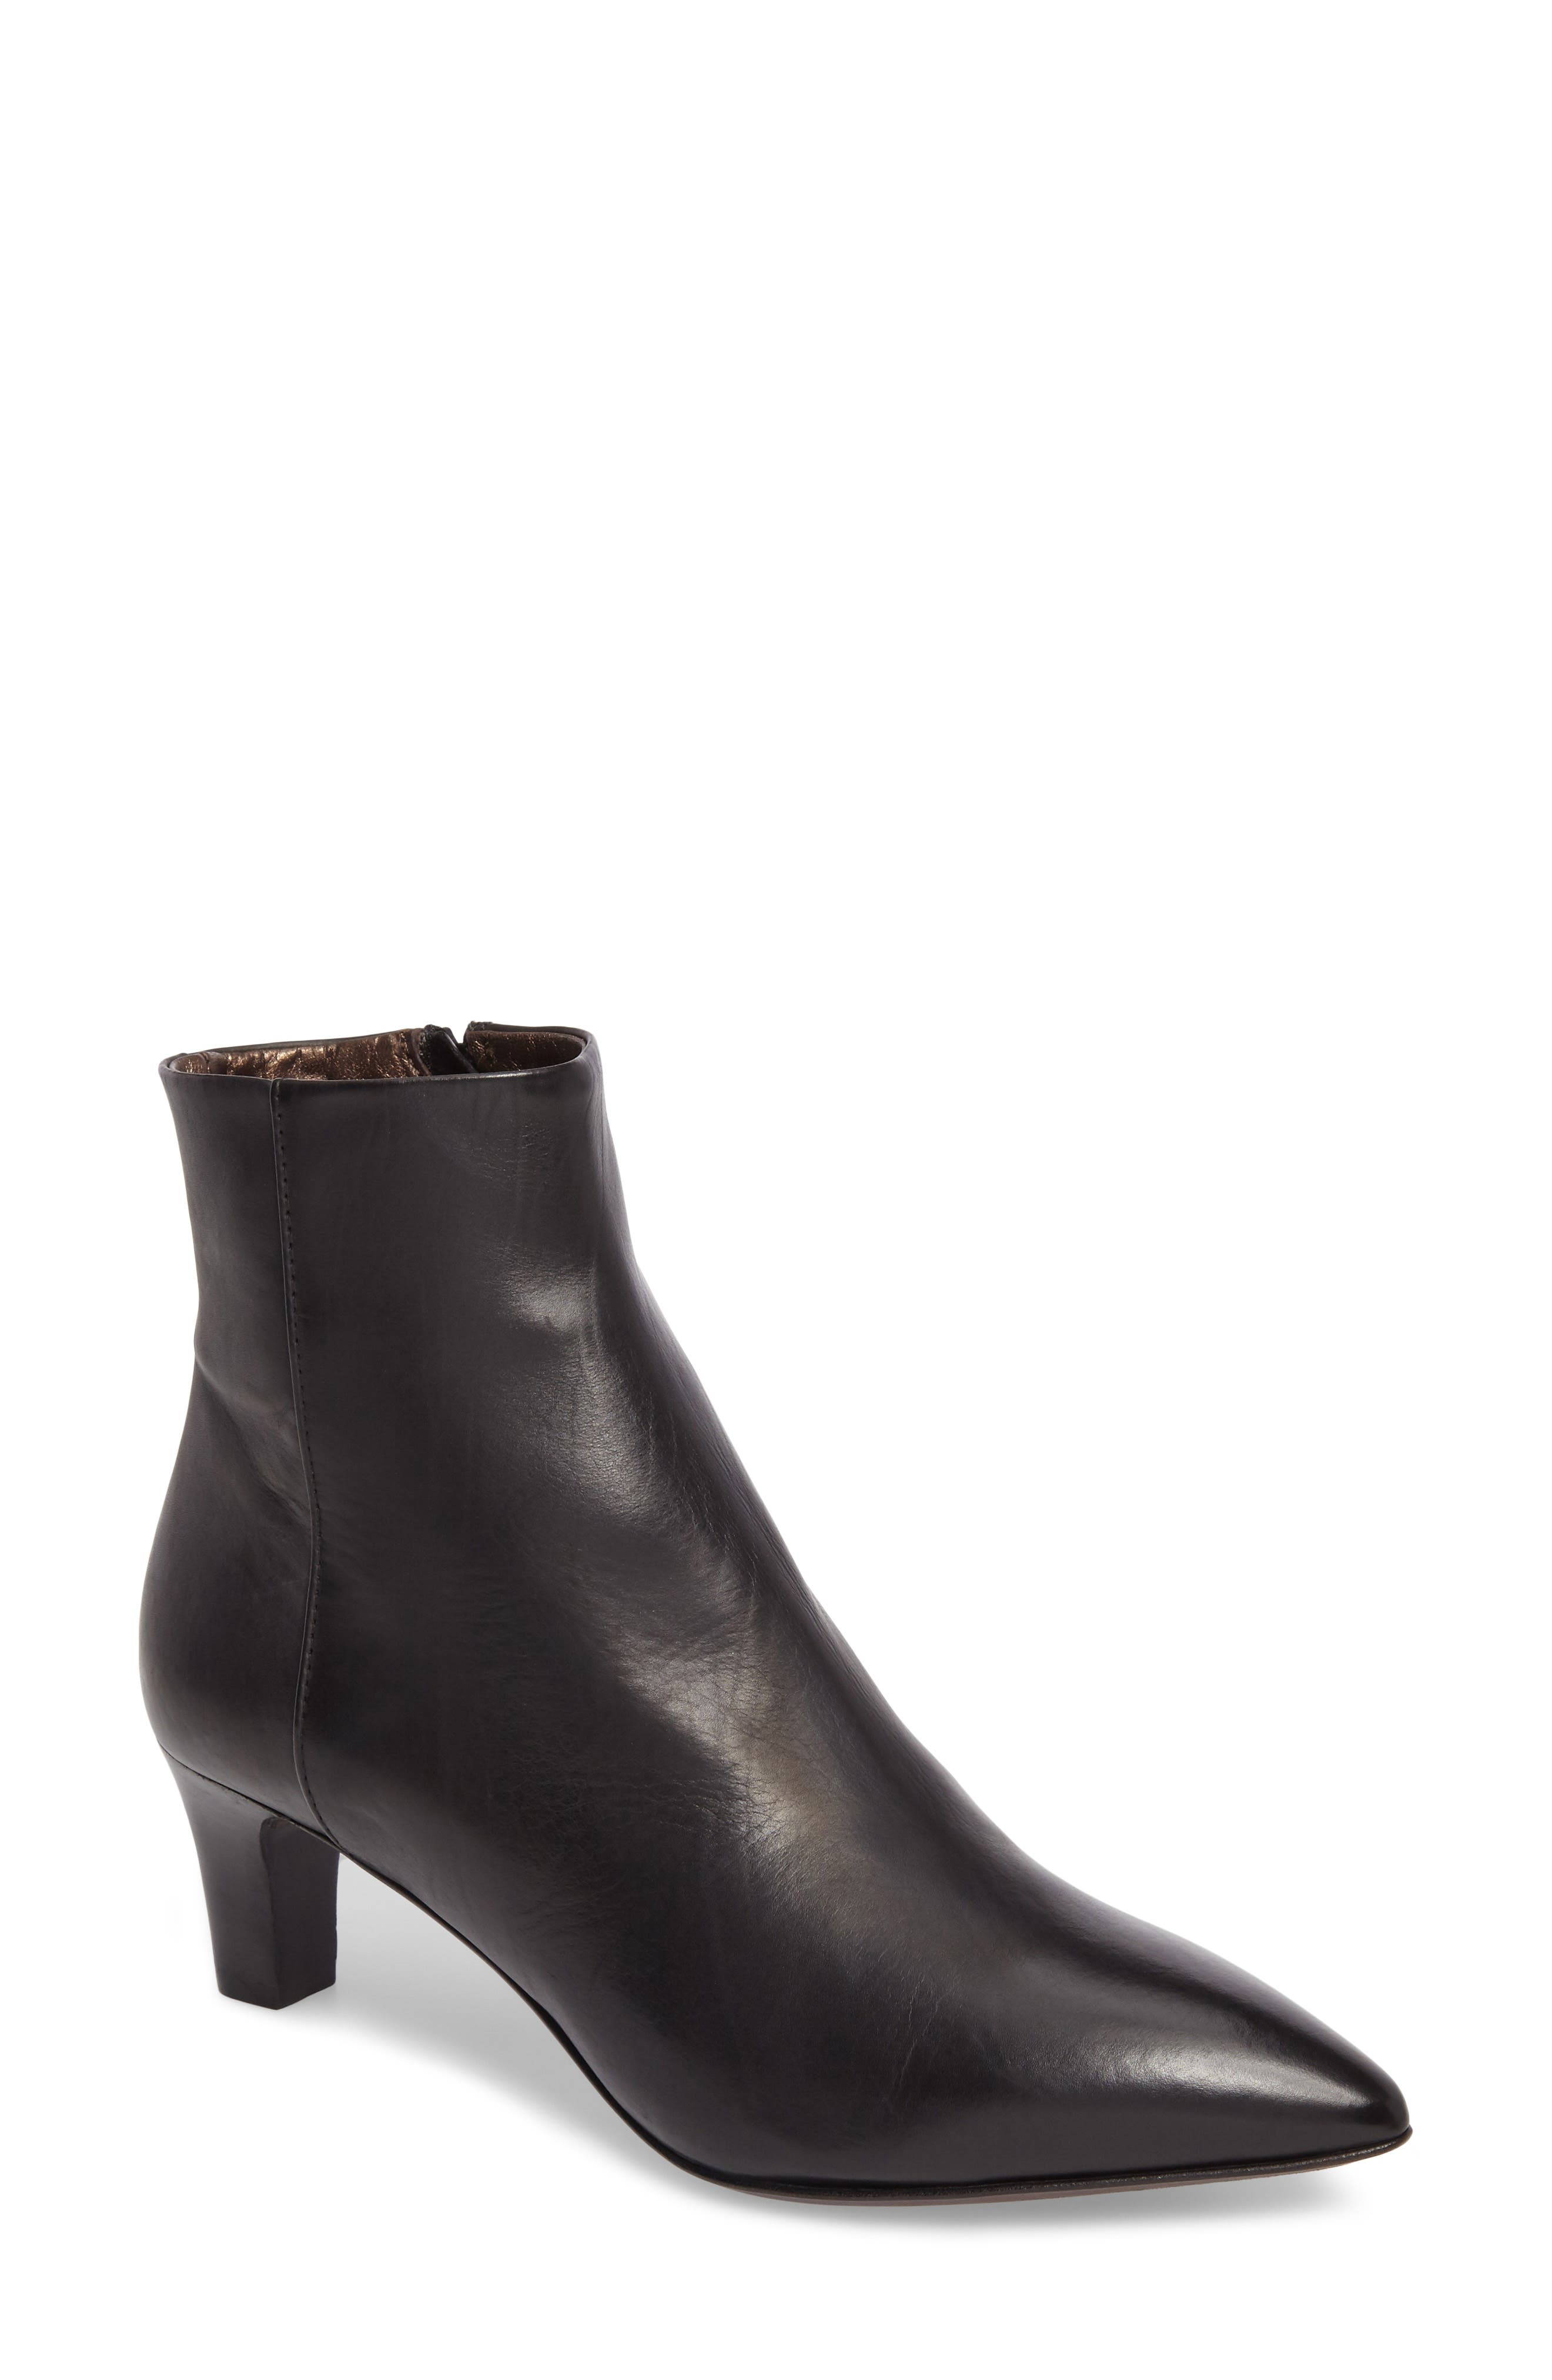 AG Pointed Toe Bootie,                         Main,                         color, 001